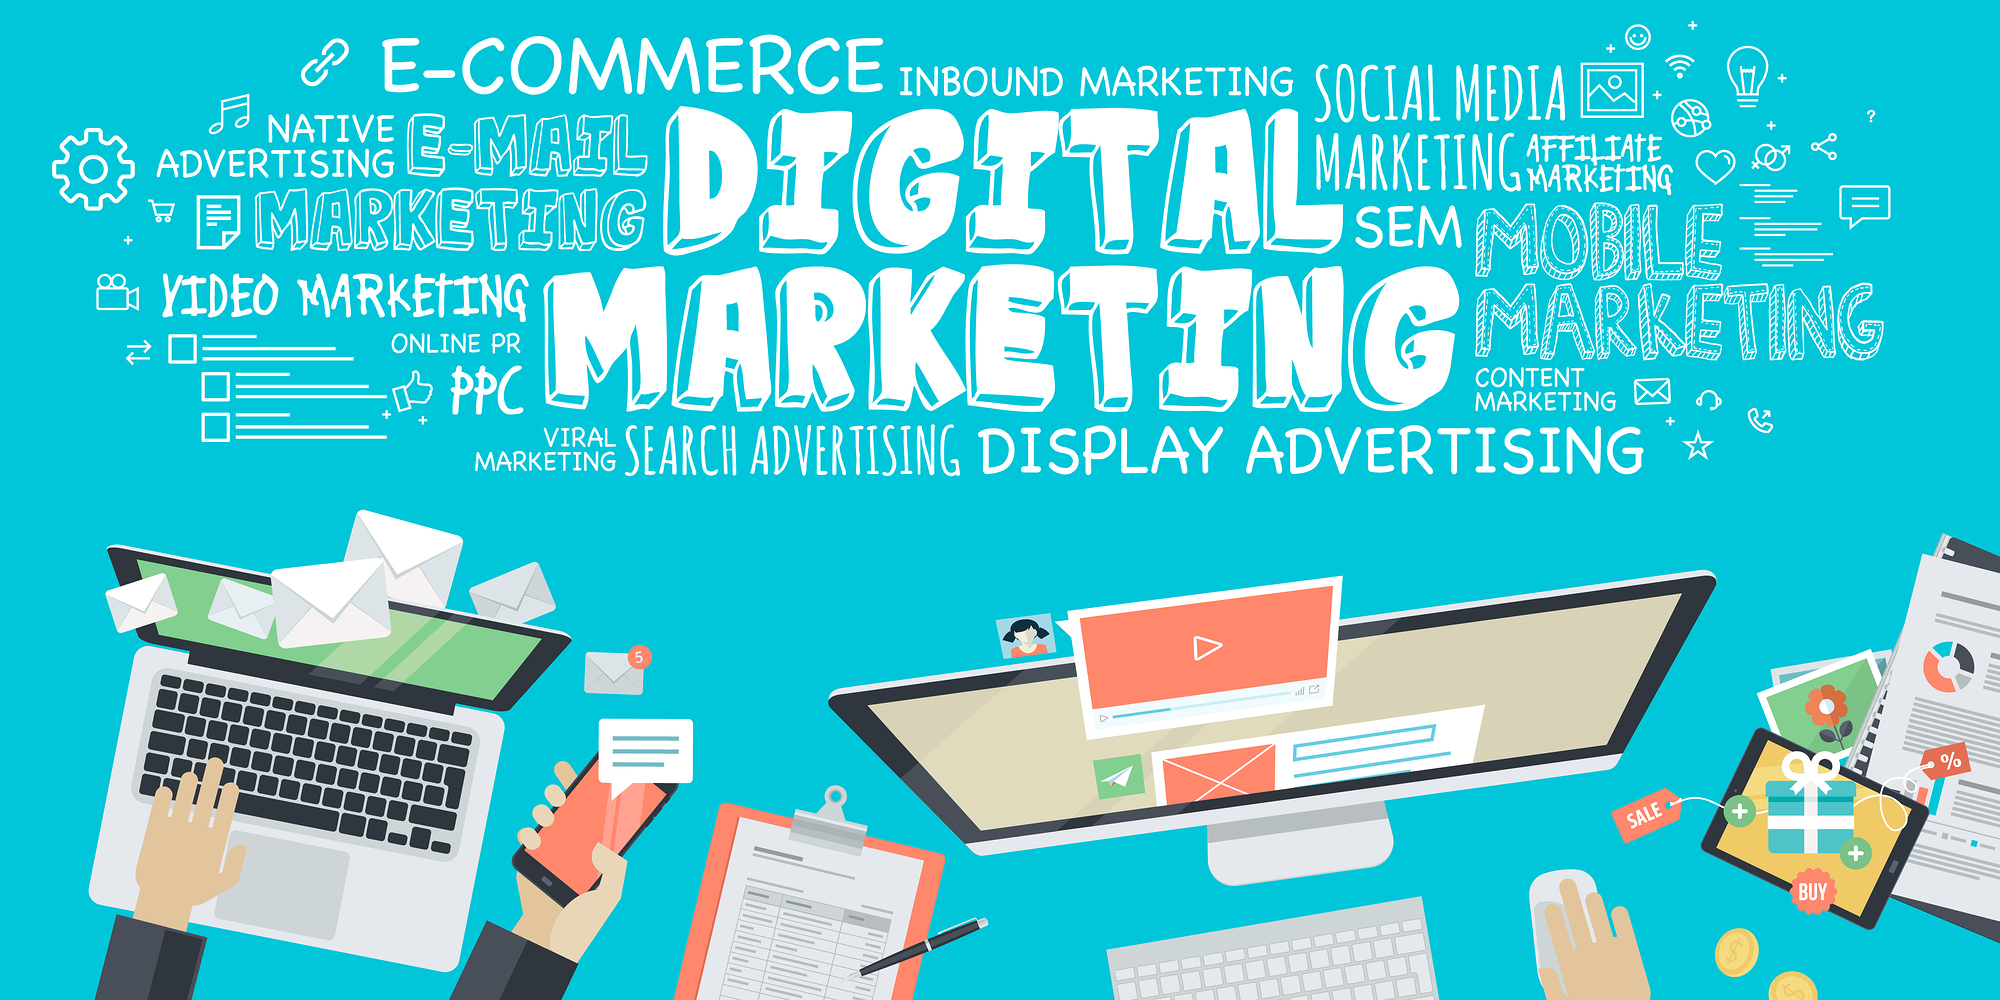 What Do You Want In A Digital Marketing Agency?